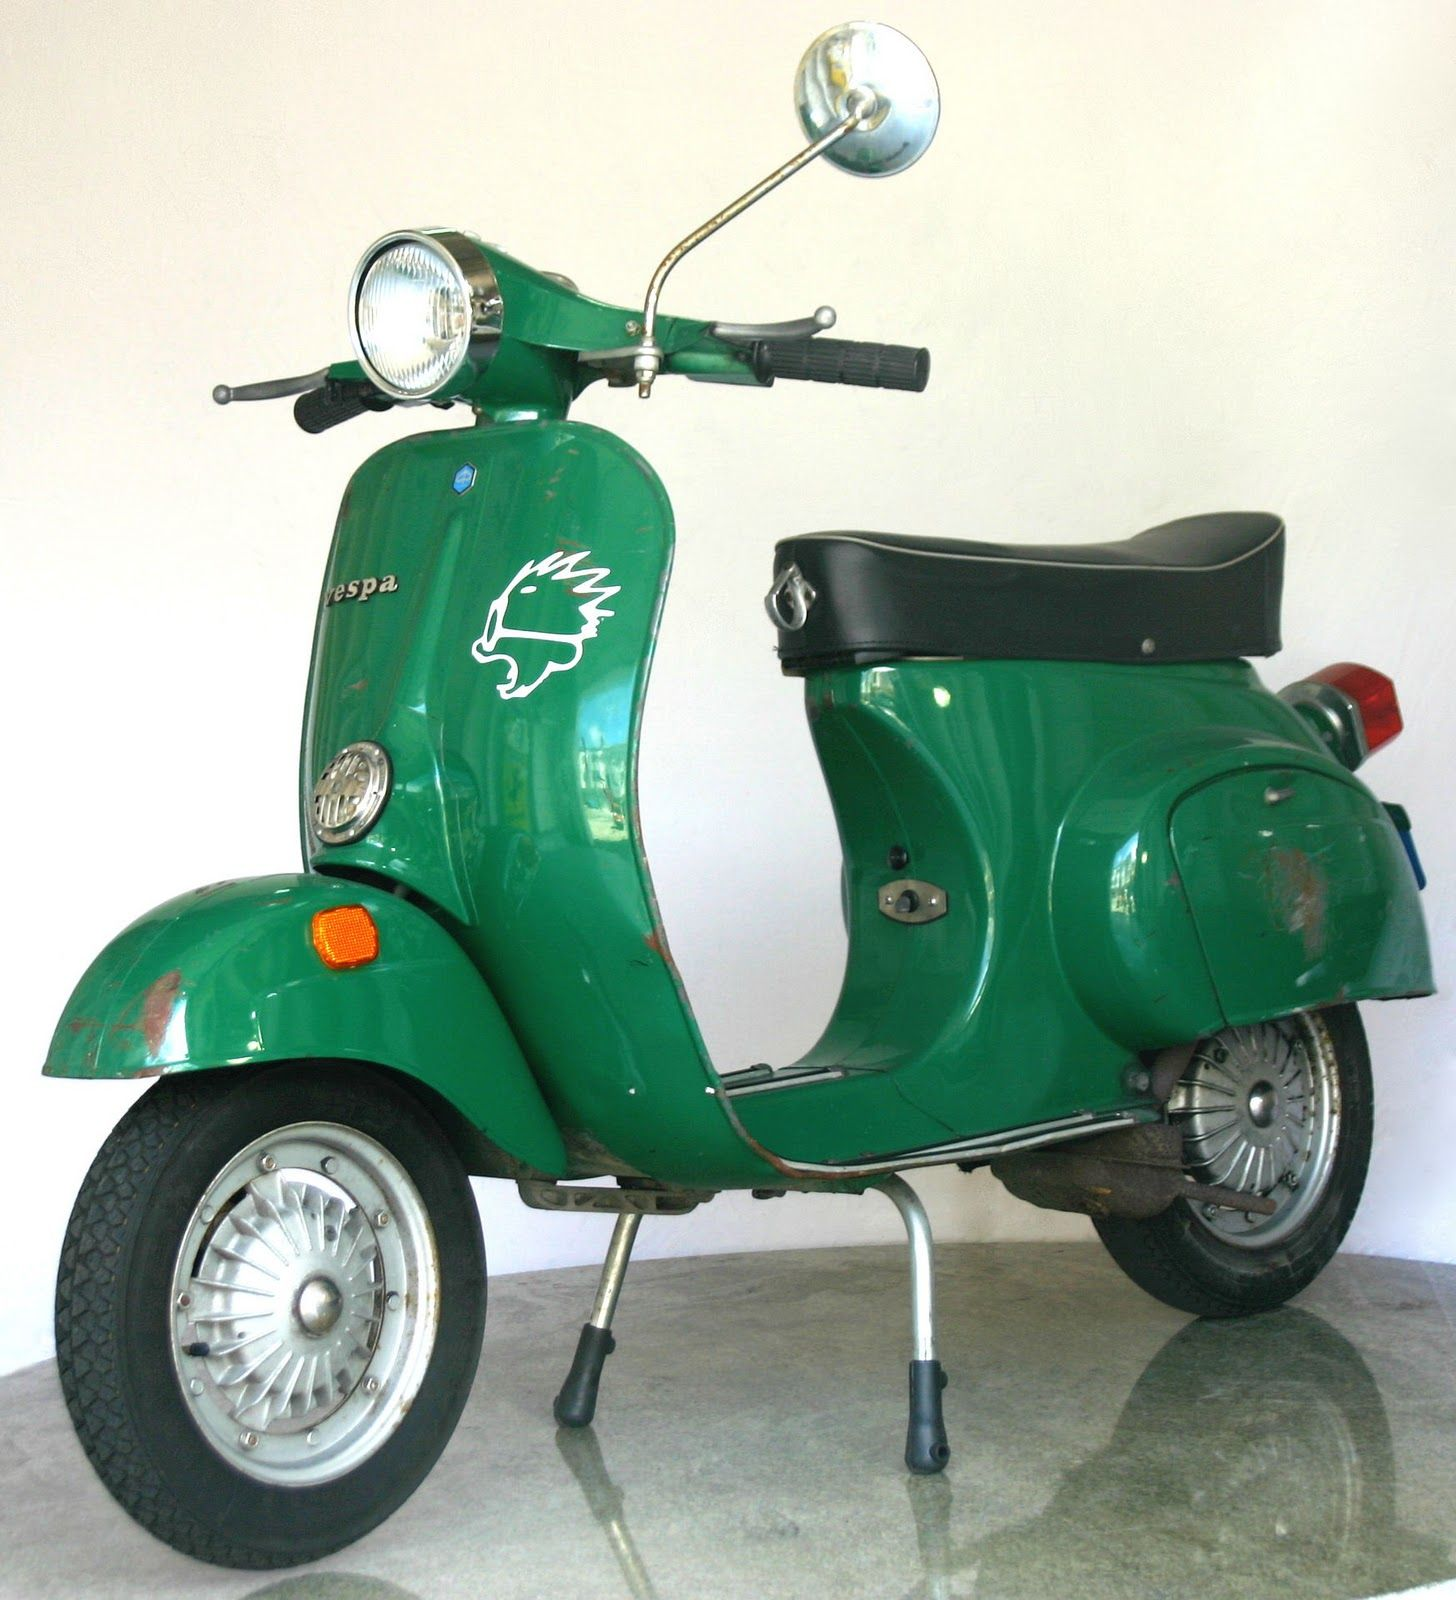 Just Like The 1973 Vespa My Sweetie Got For Me Same Color Vespa Sweet Style Color